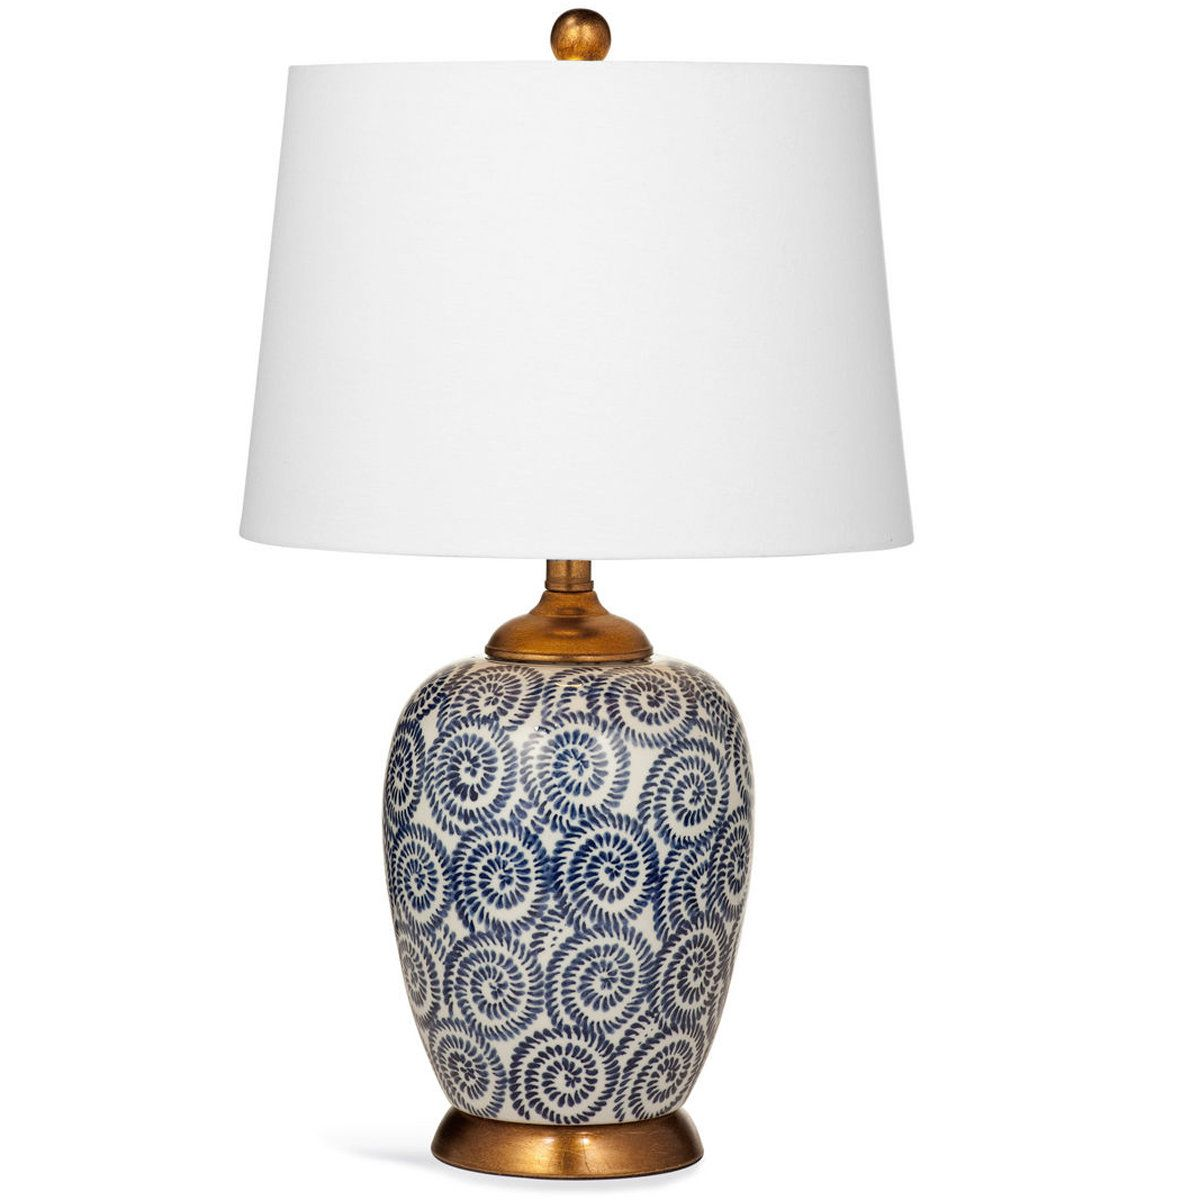 Navy And White Swirl Table Lamp Antique Lamp Shades Unique Lamps Modern Lamp Shades